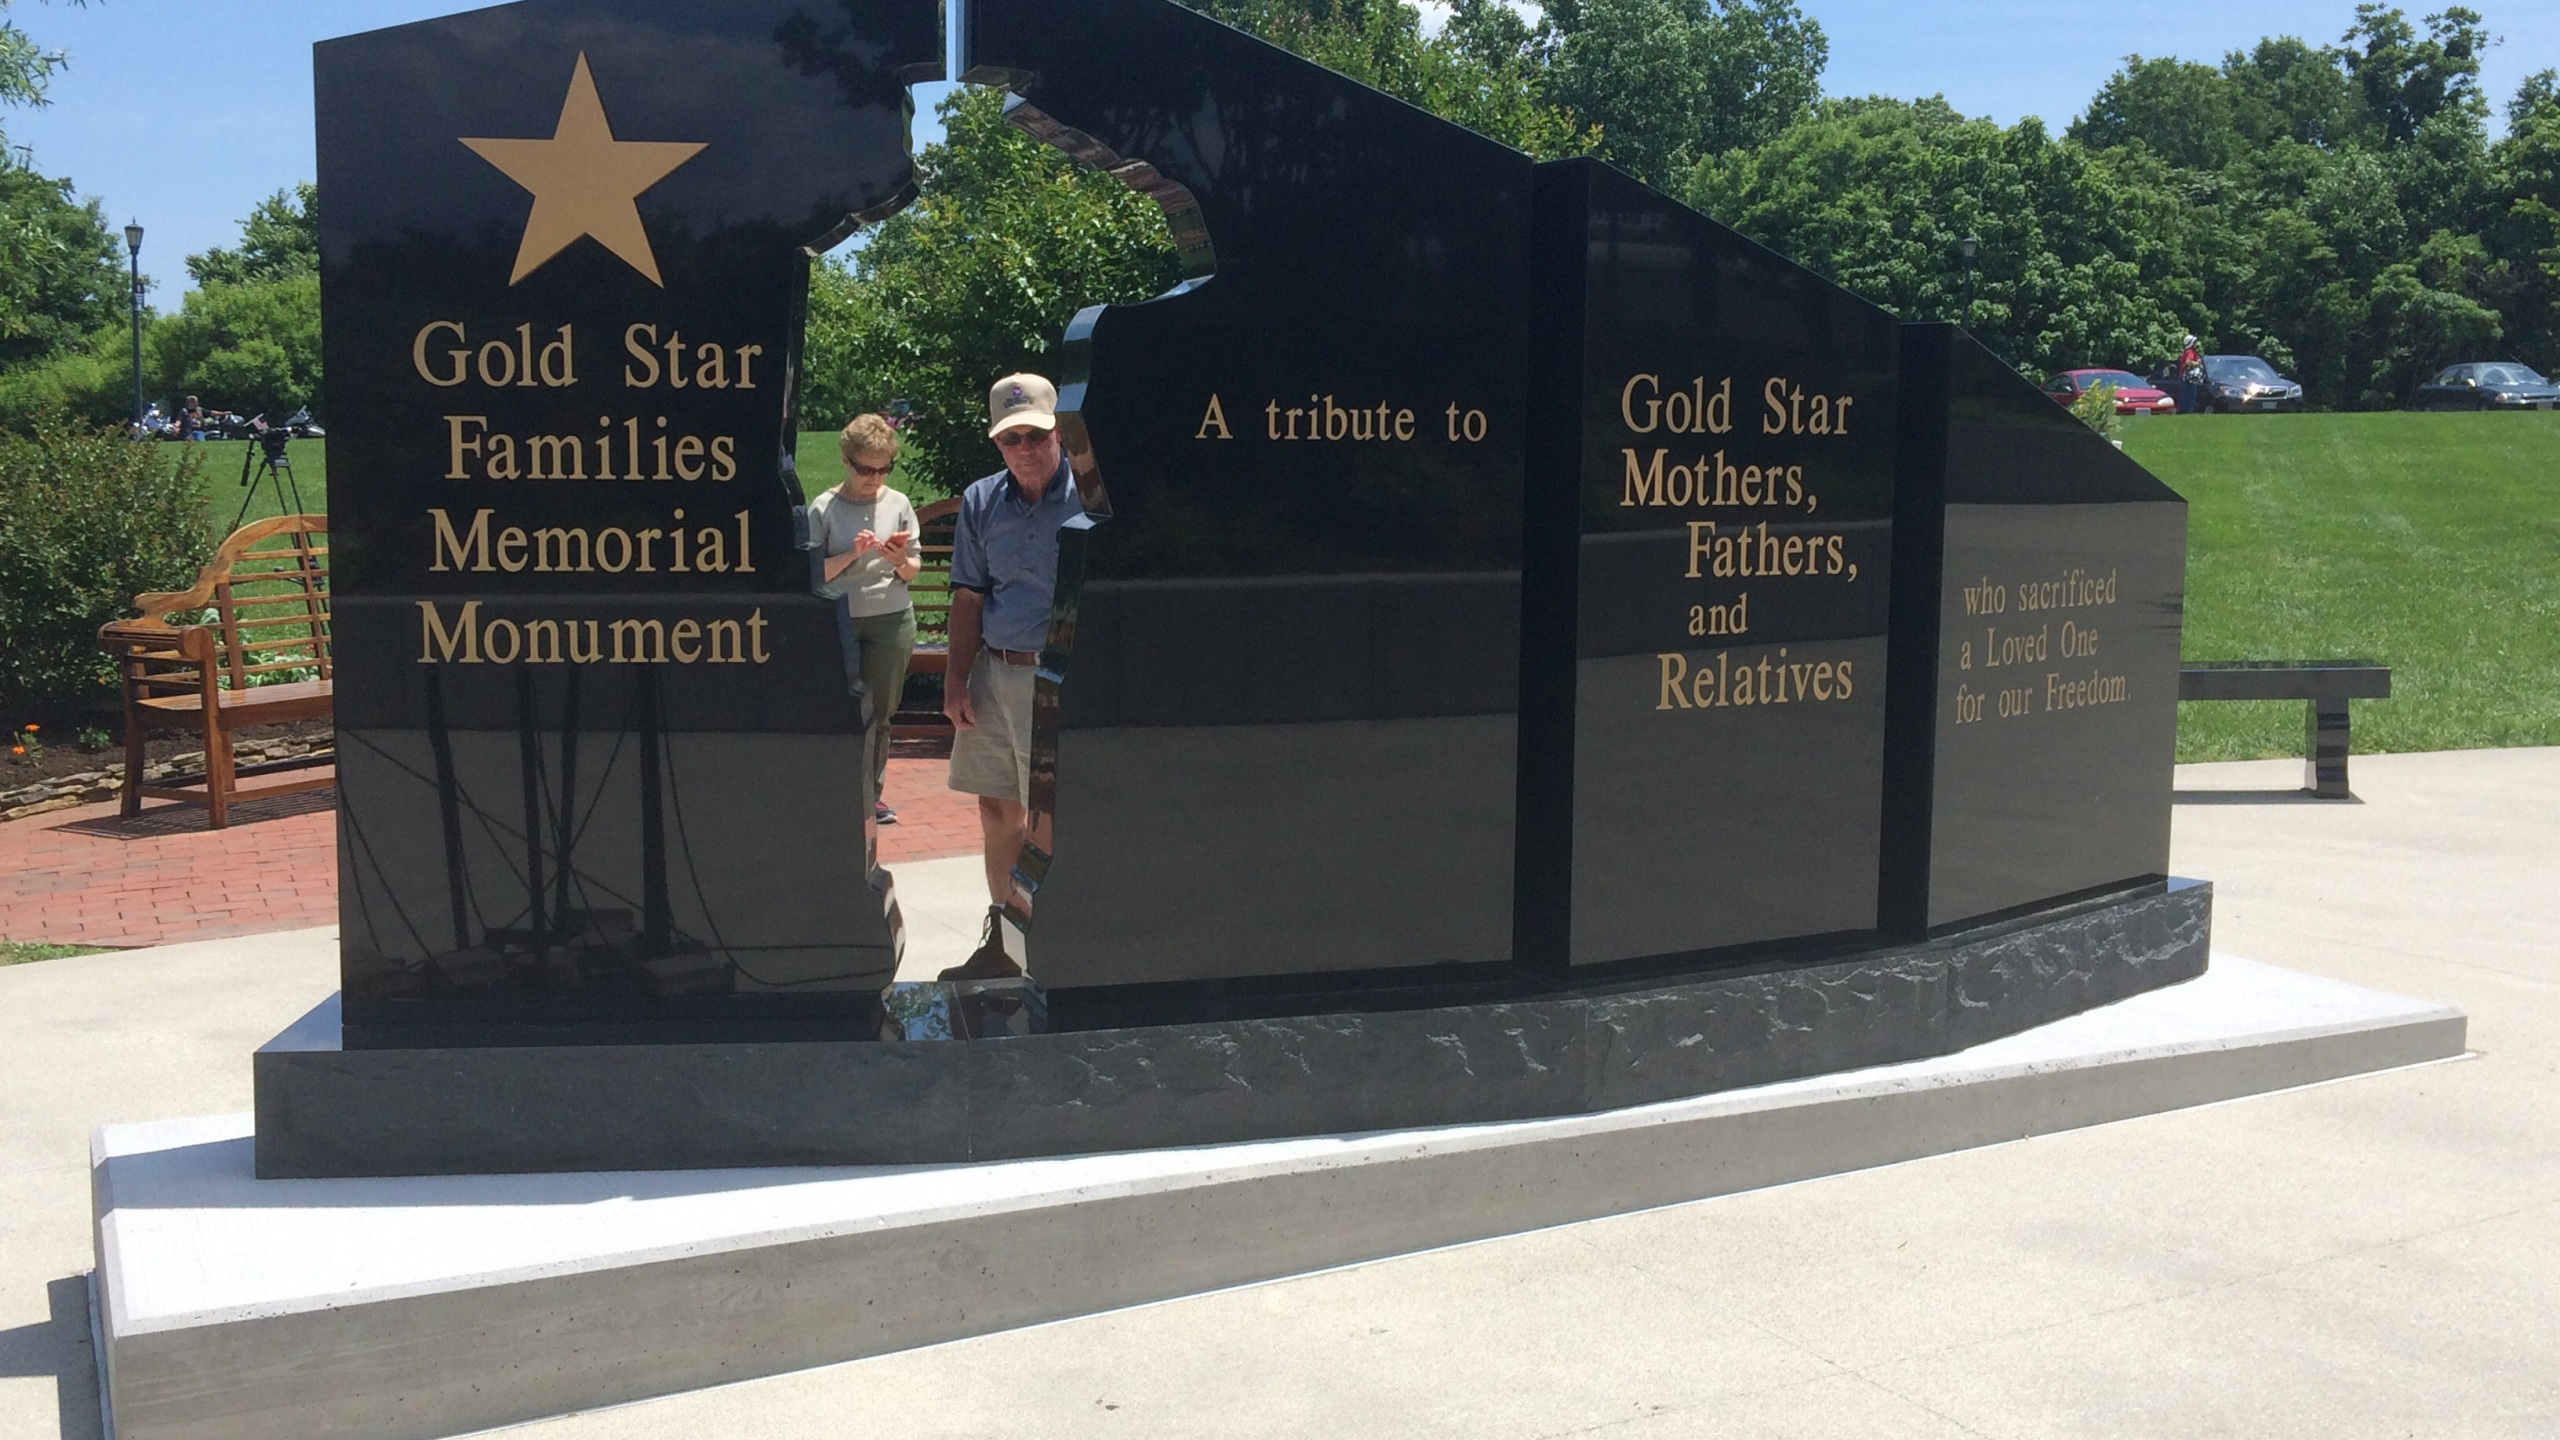 Gold Star Families Monument_1496098102233.jpg